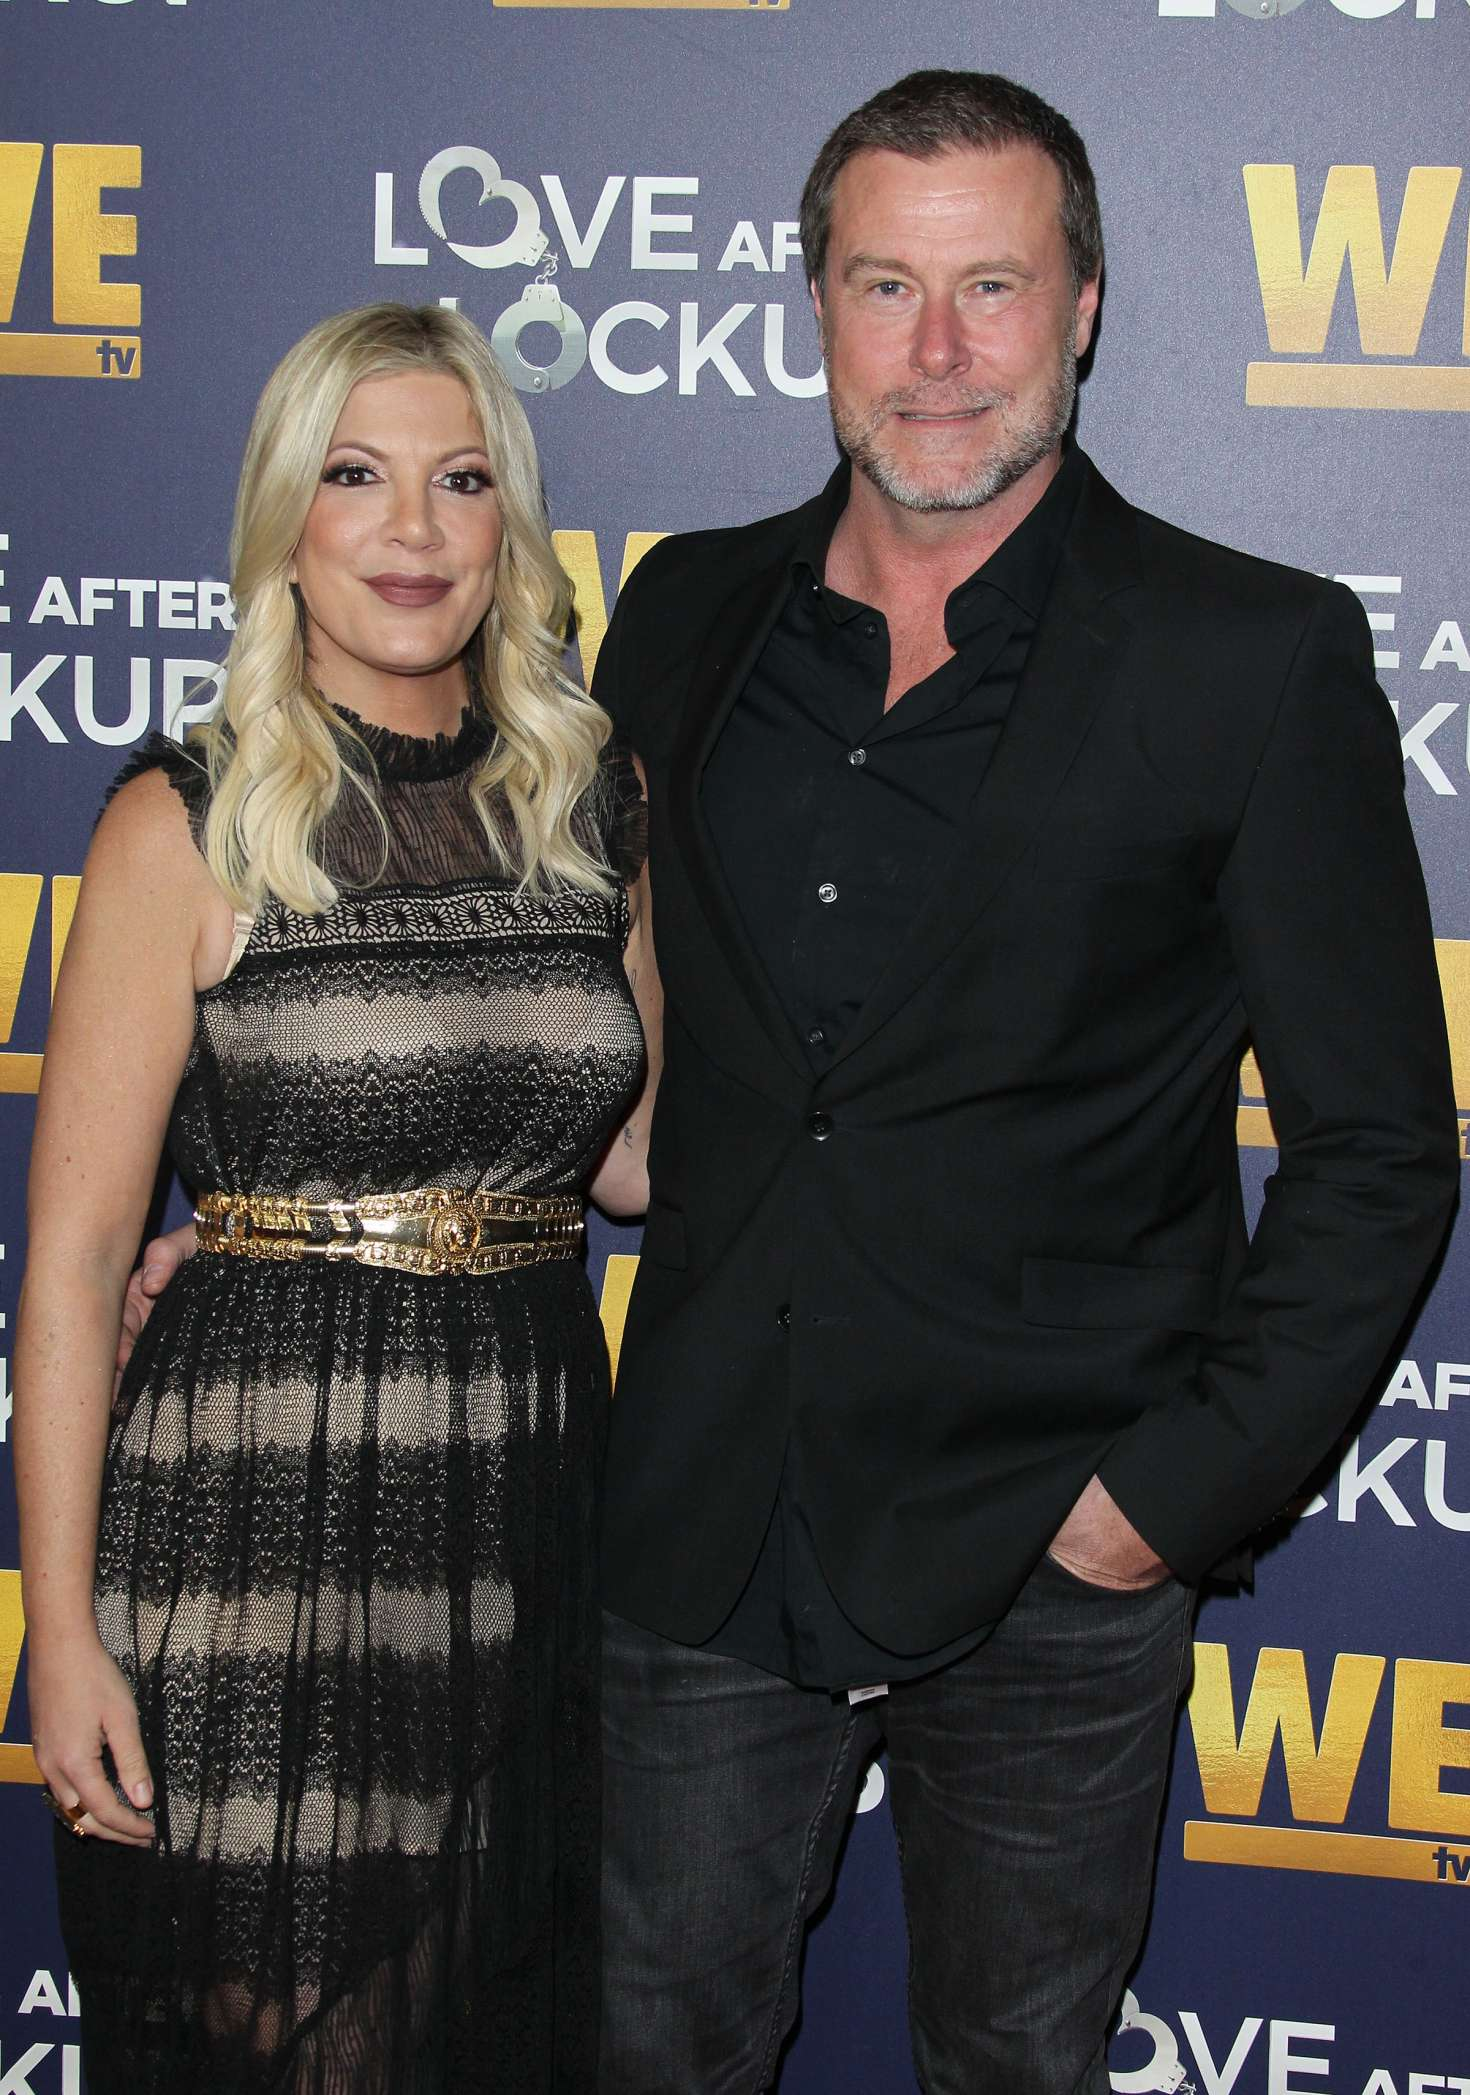 Tori Spelling 2018 : Tori Spelling: Love After Lockup Panel -09